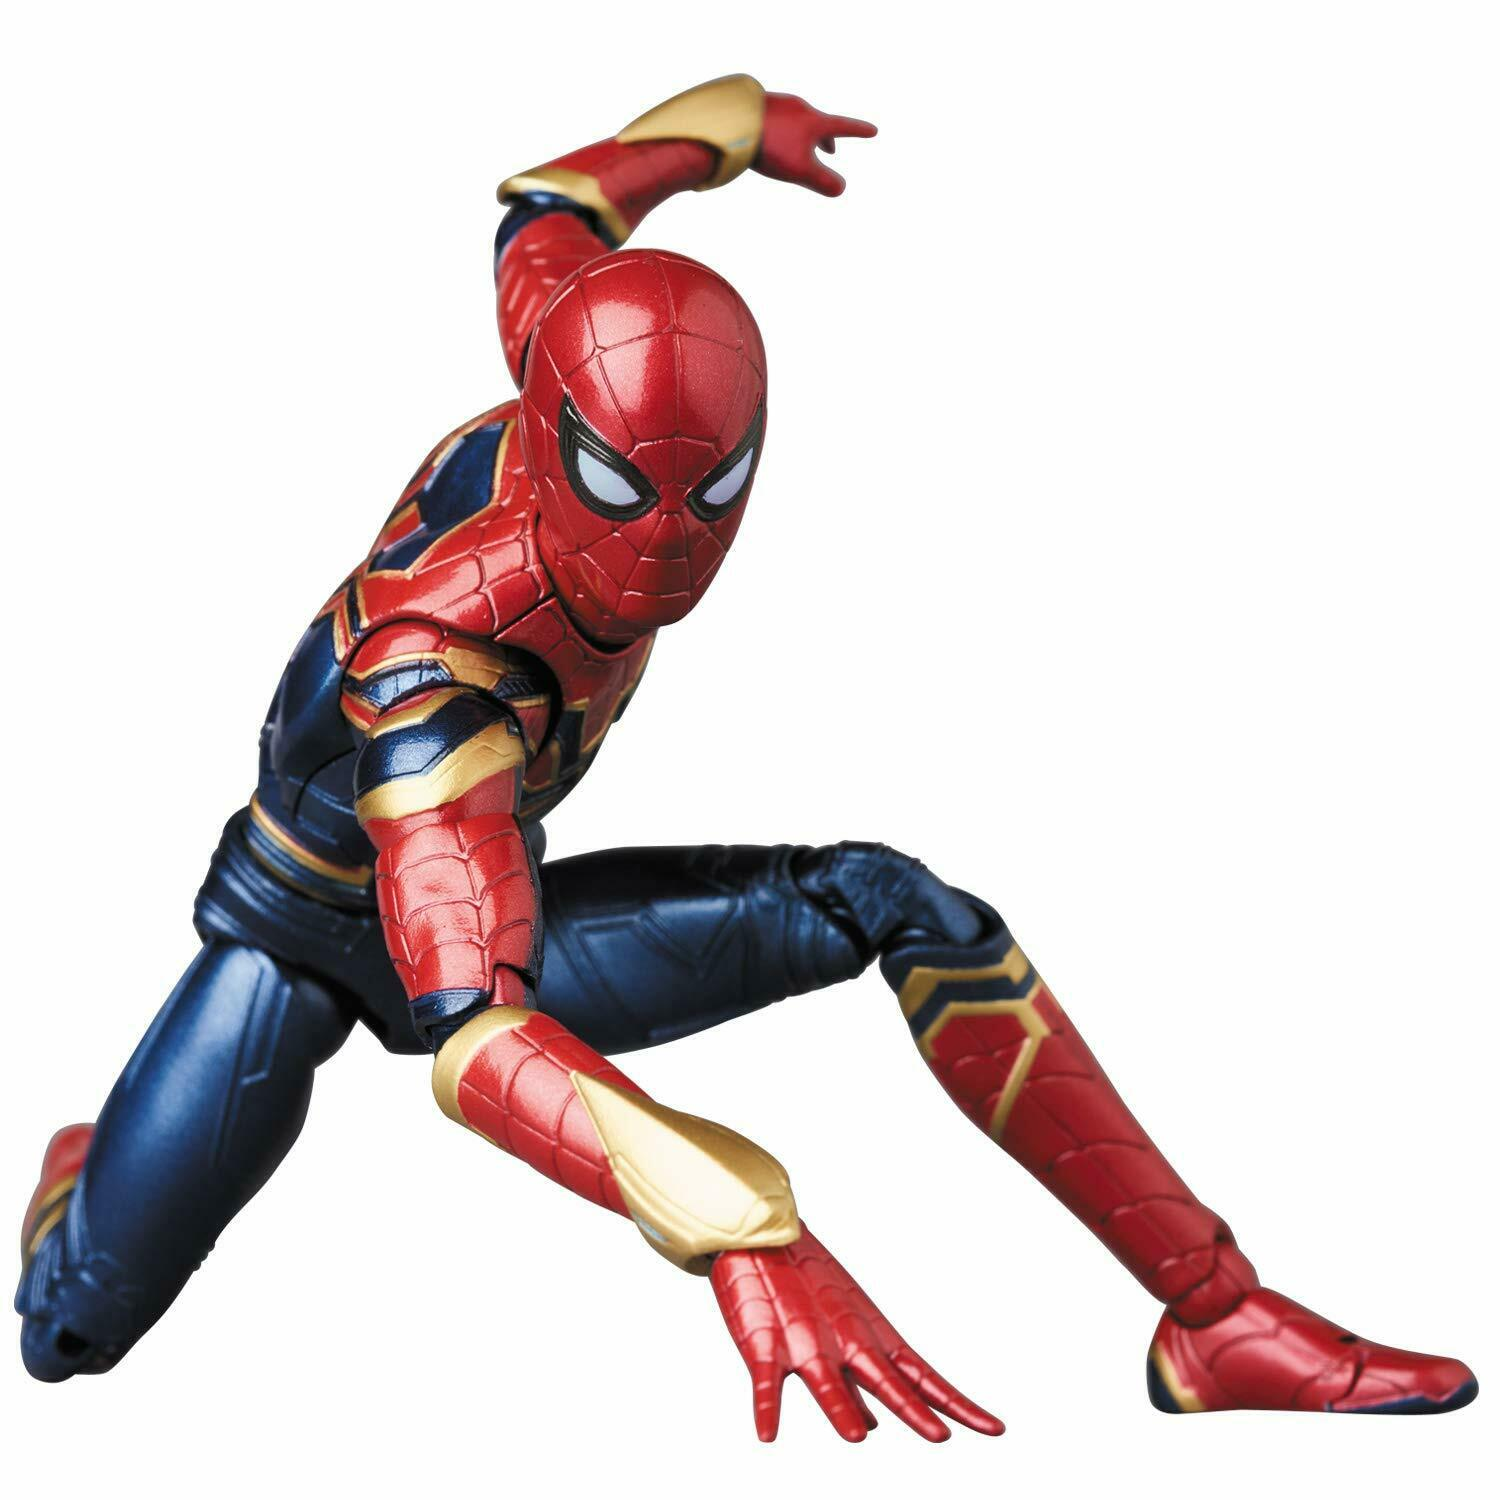 MAFEX IRON SPIDER No.081 145 mm in height Japan nuovo